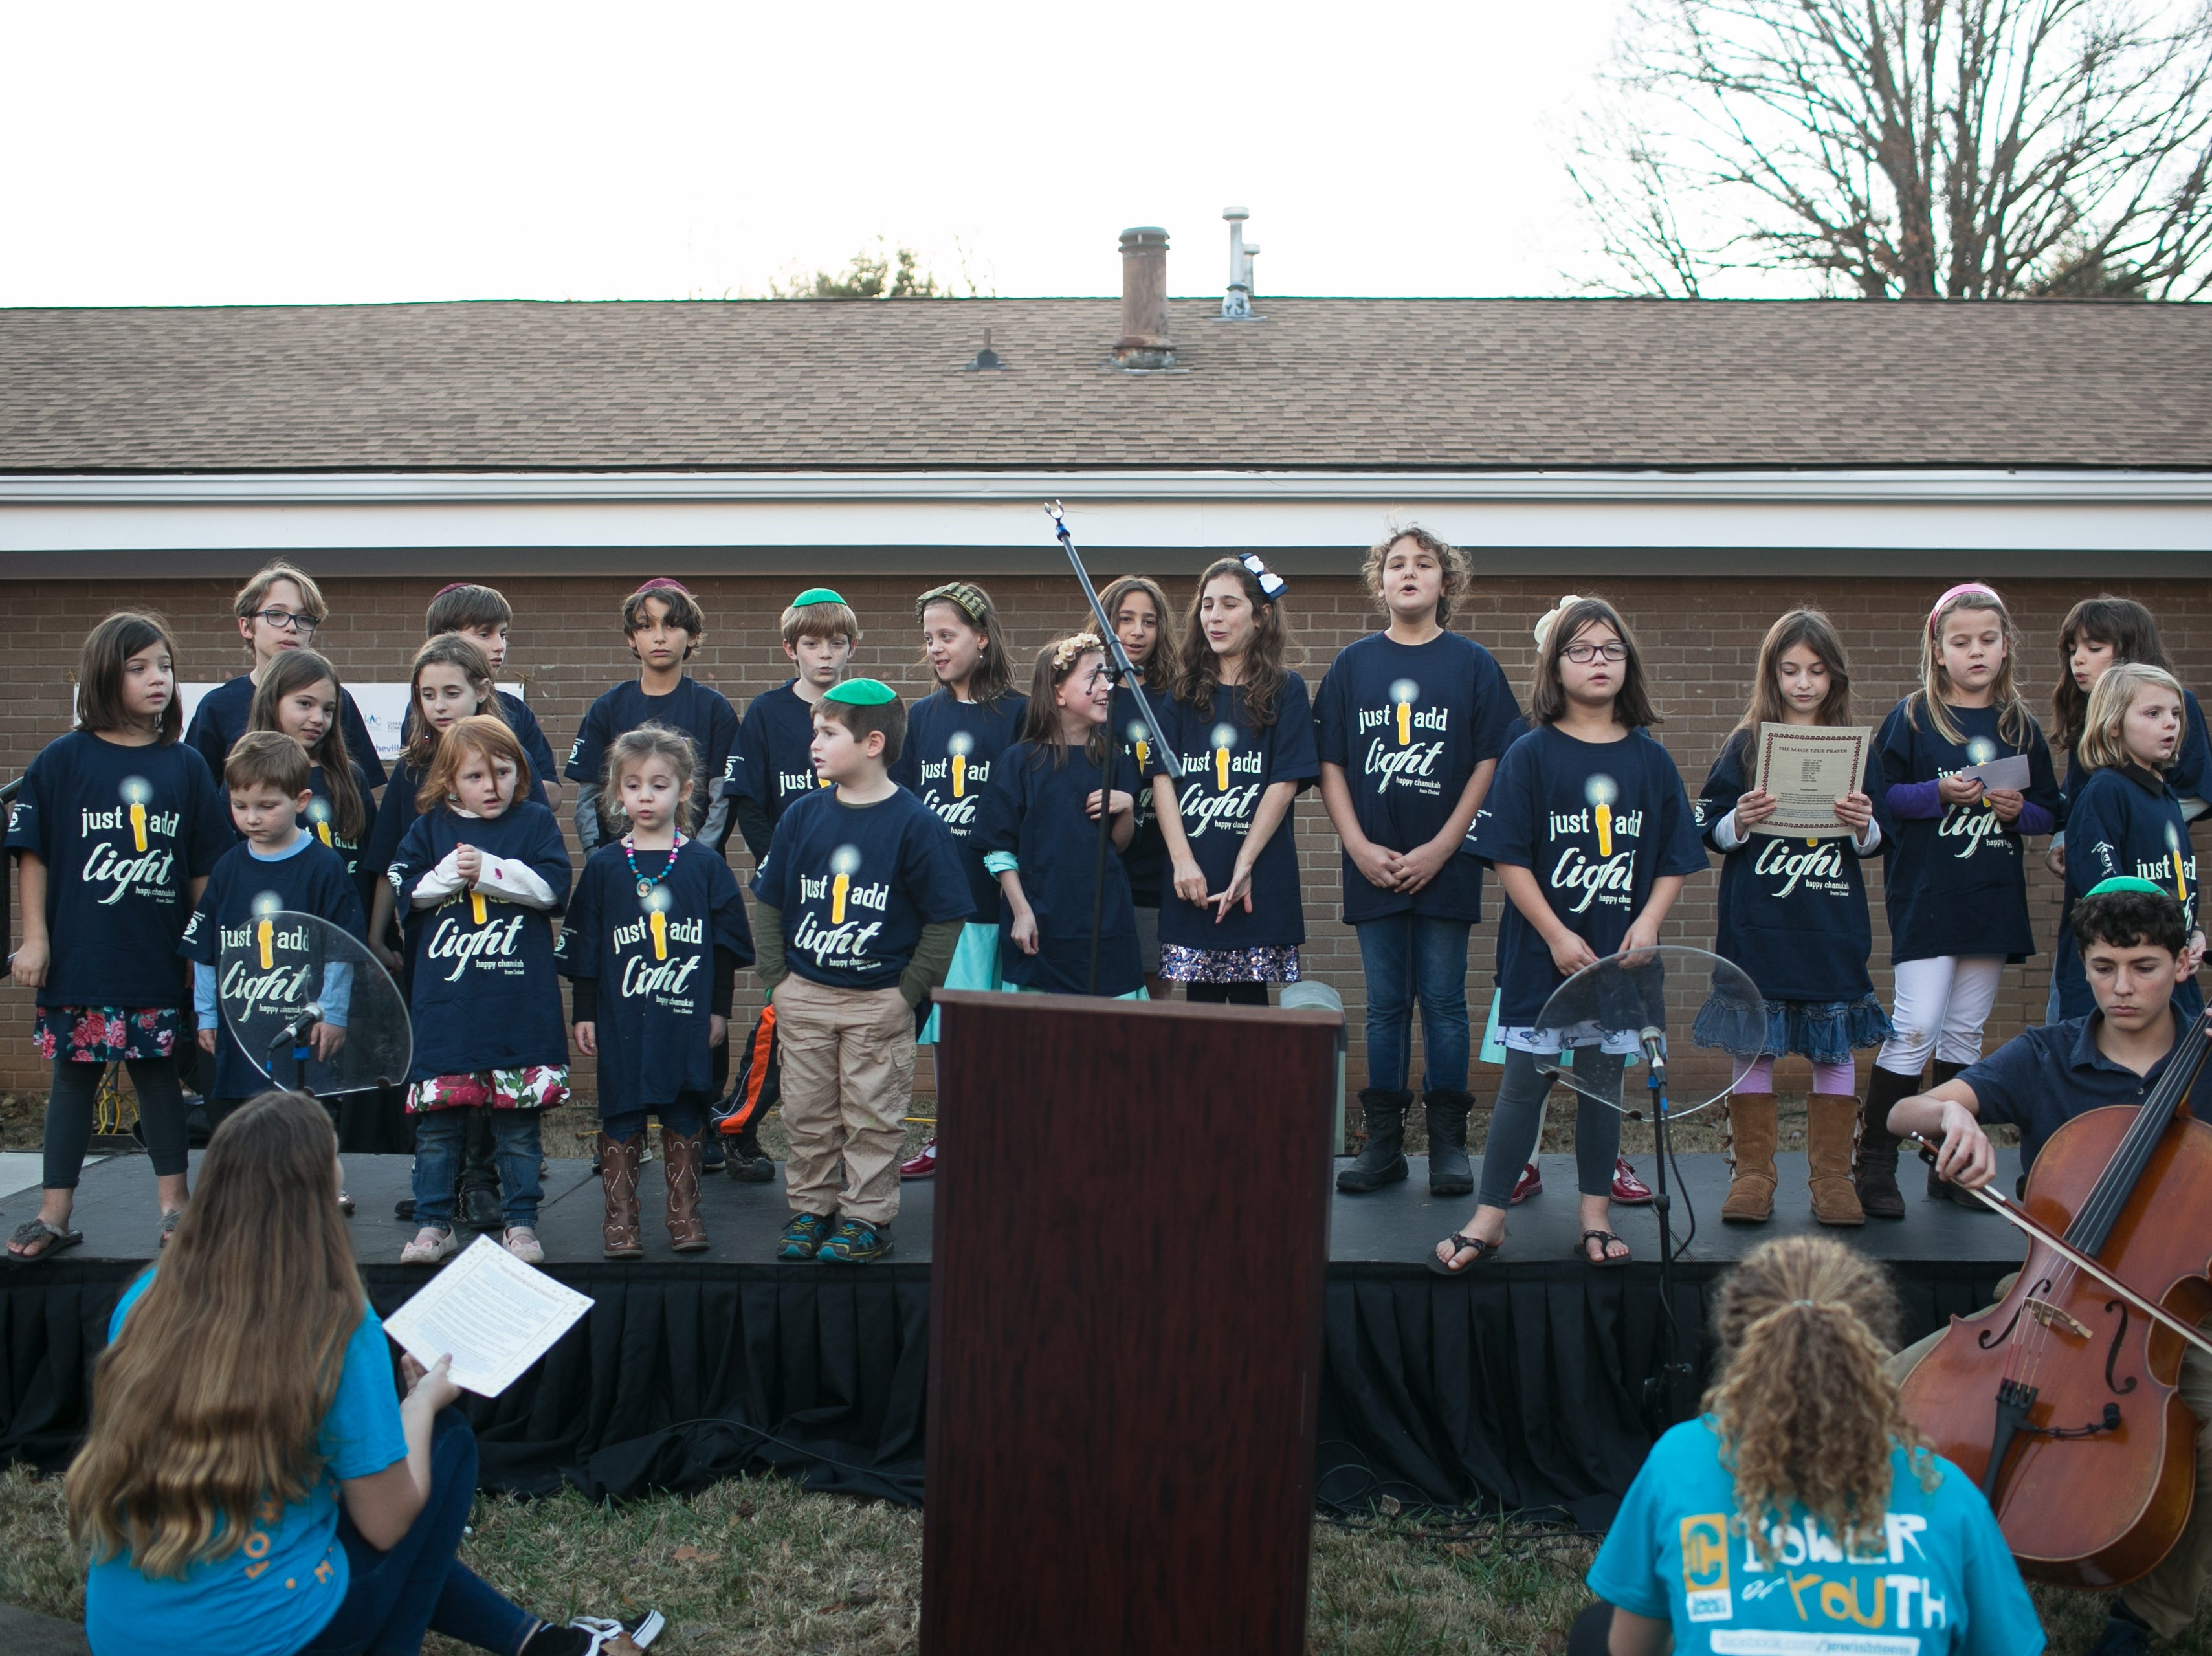 The Chabad Hebrew School of the Arts Sunday School performs during Chanukah Live!, Asheville's community Hanukkah celebration, at Chabad House on Dec. 2, 2018.